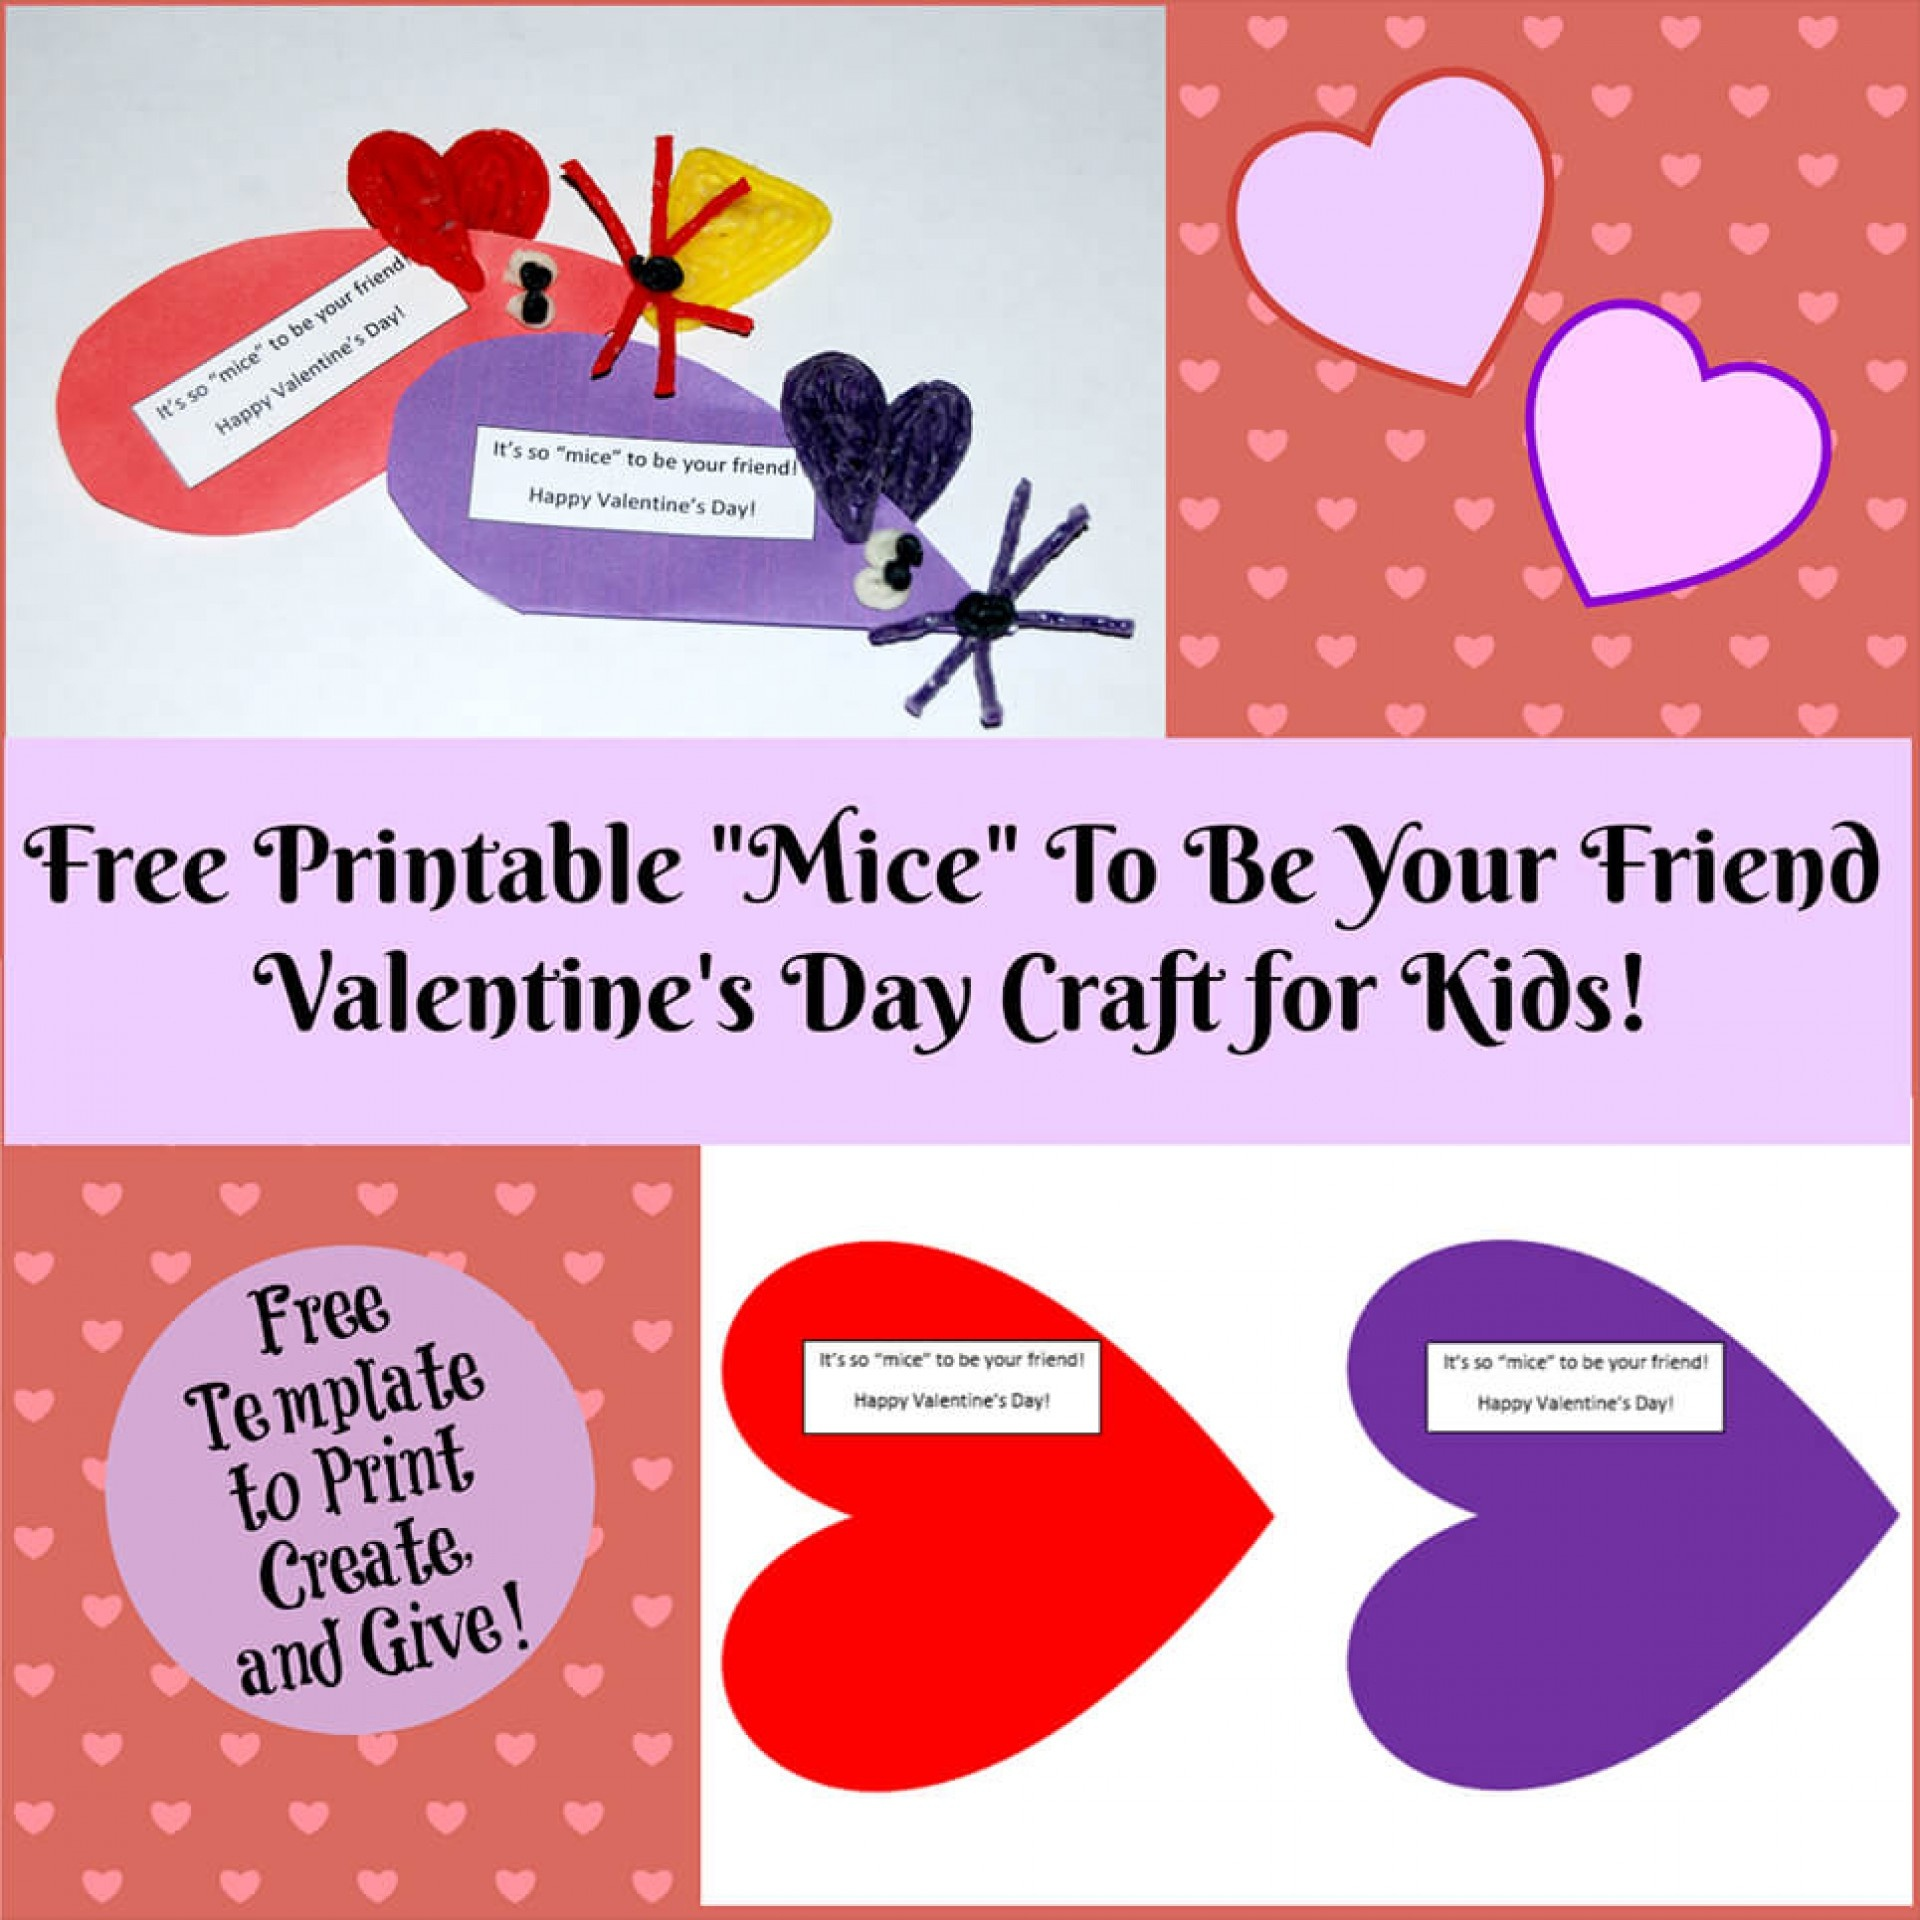 002 Free Printable Cards Templates Template Incredible Ideas - Free Printable Valentine's Day Stencils